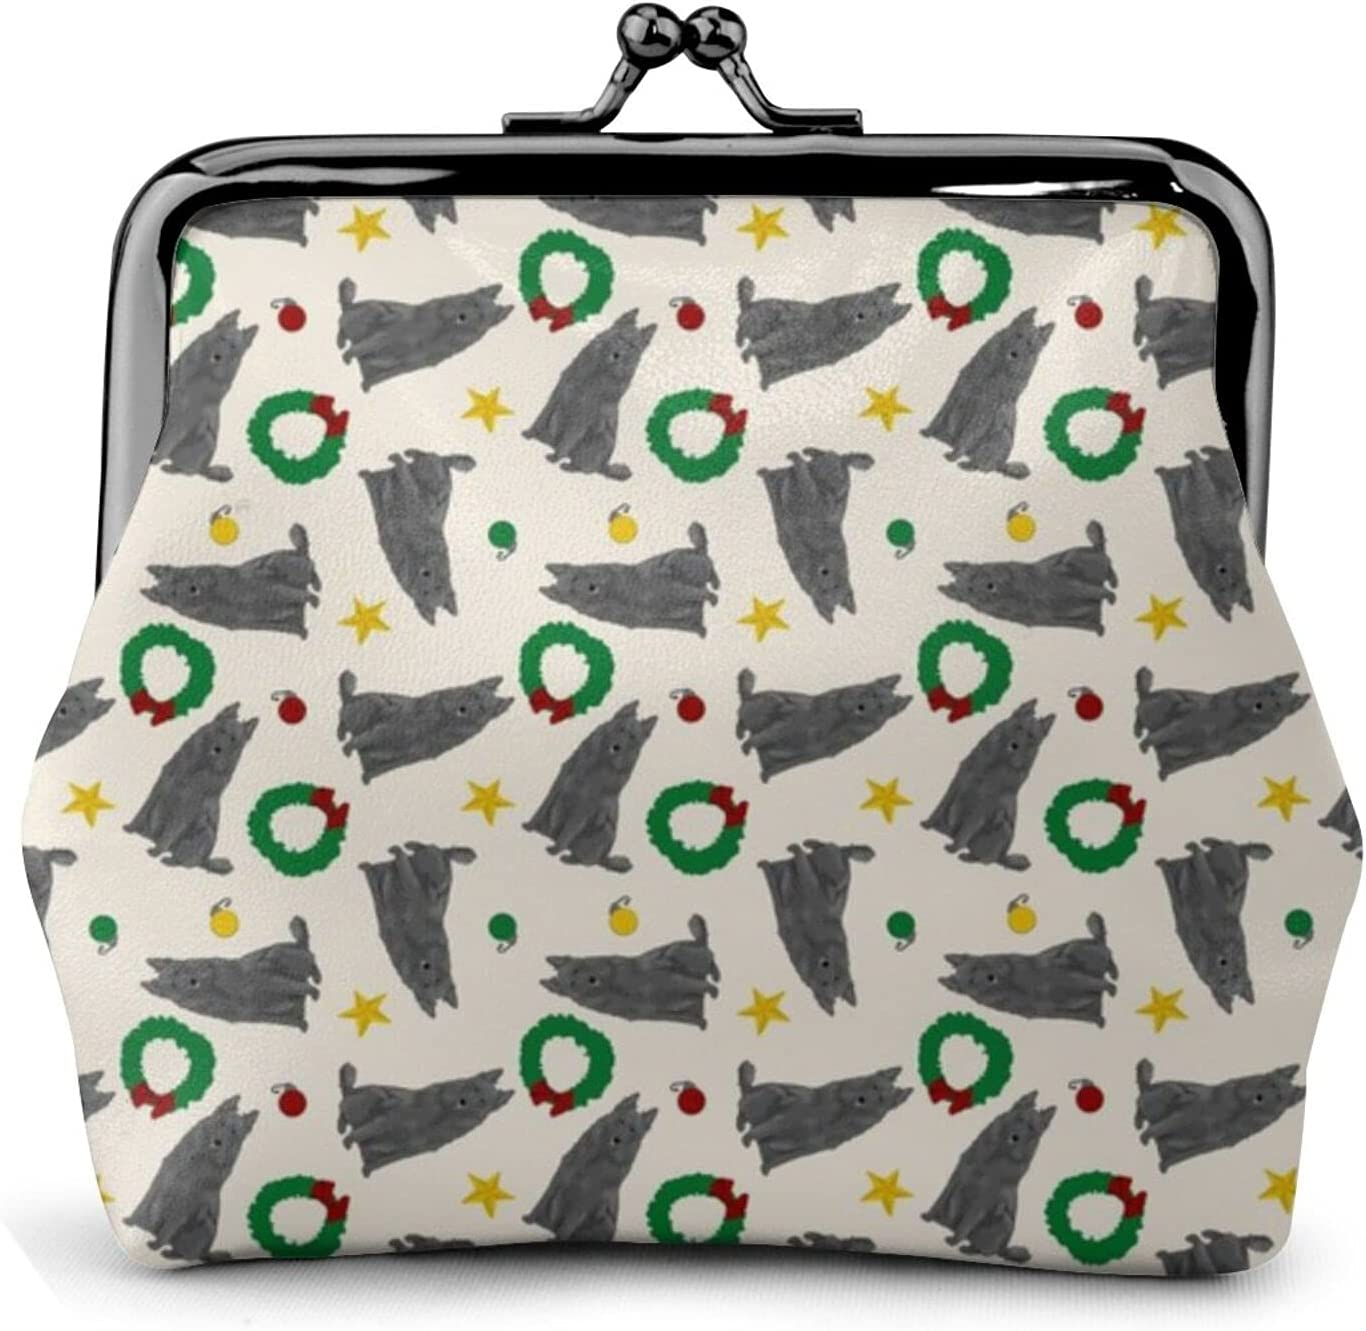 Belgian Sheepdogs Christmas 386 Coin Purse Retro Money Pouch with Kiss-lock Buckle Small Wallet for Women and Girls